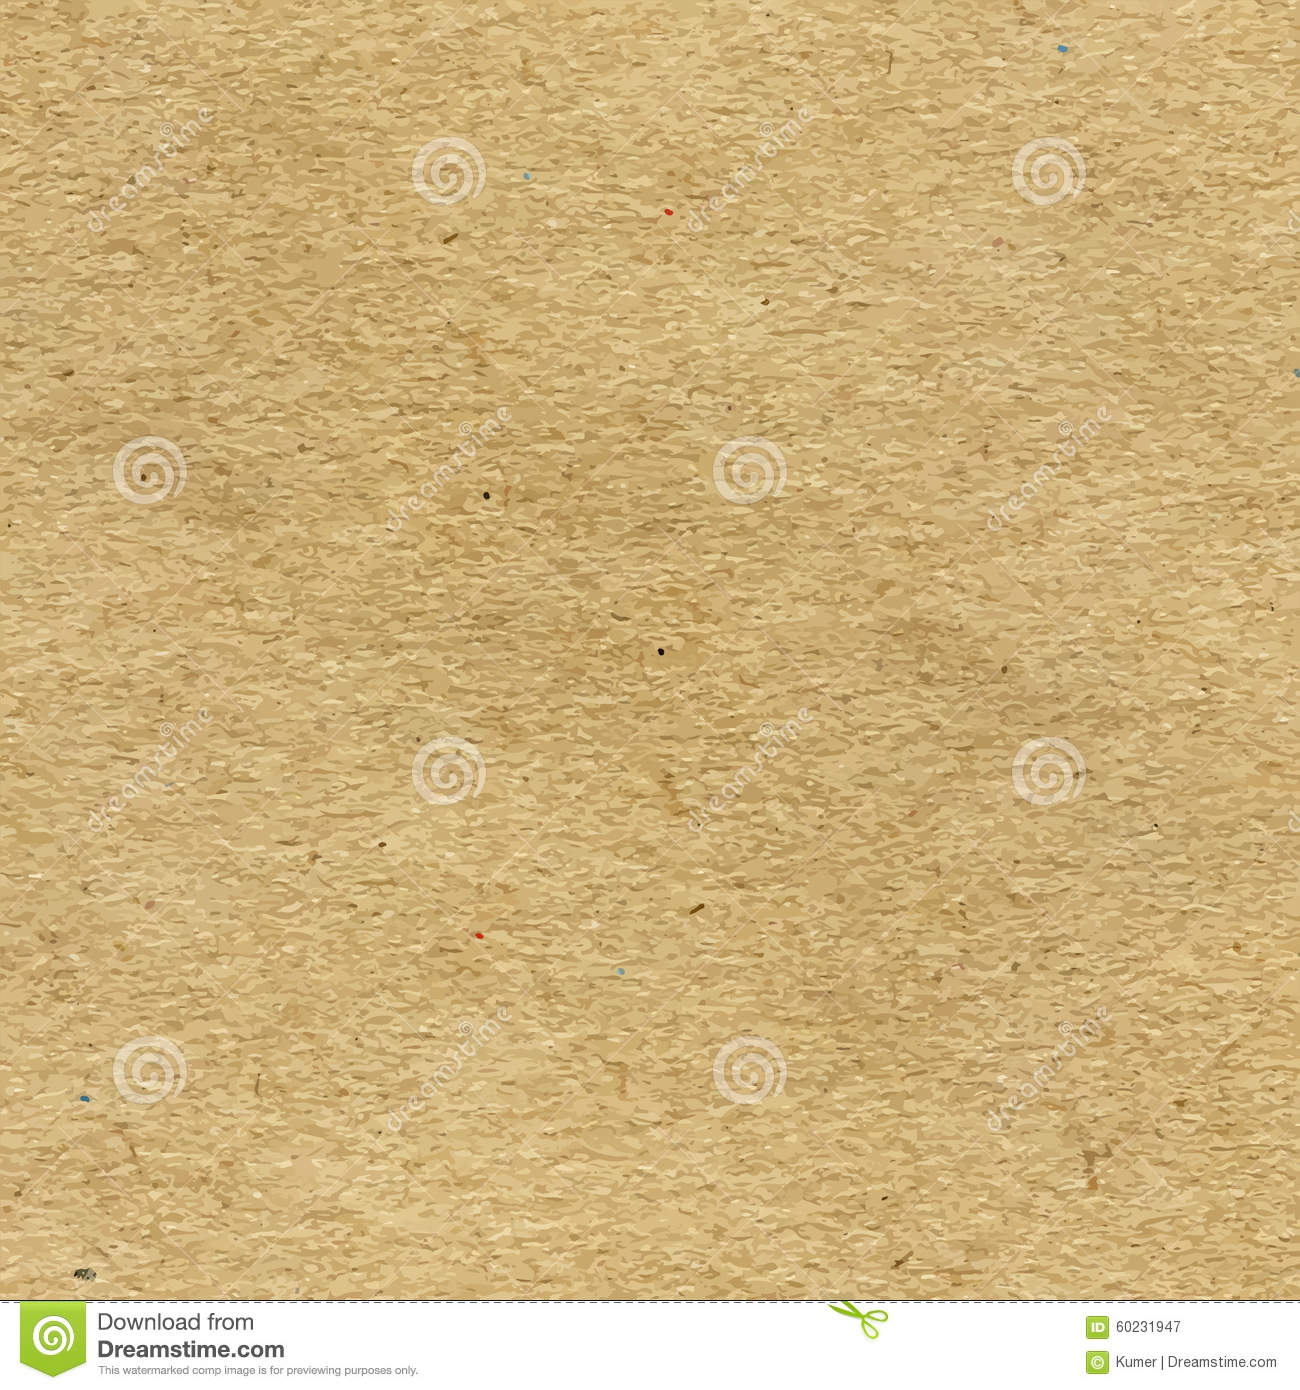 Vector Craft Recycled Paper Texture Stock Vector - Image ...